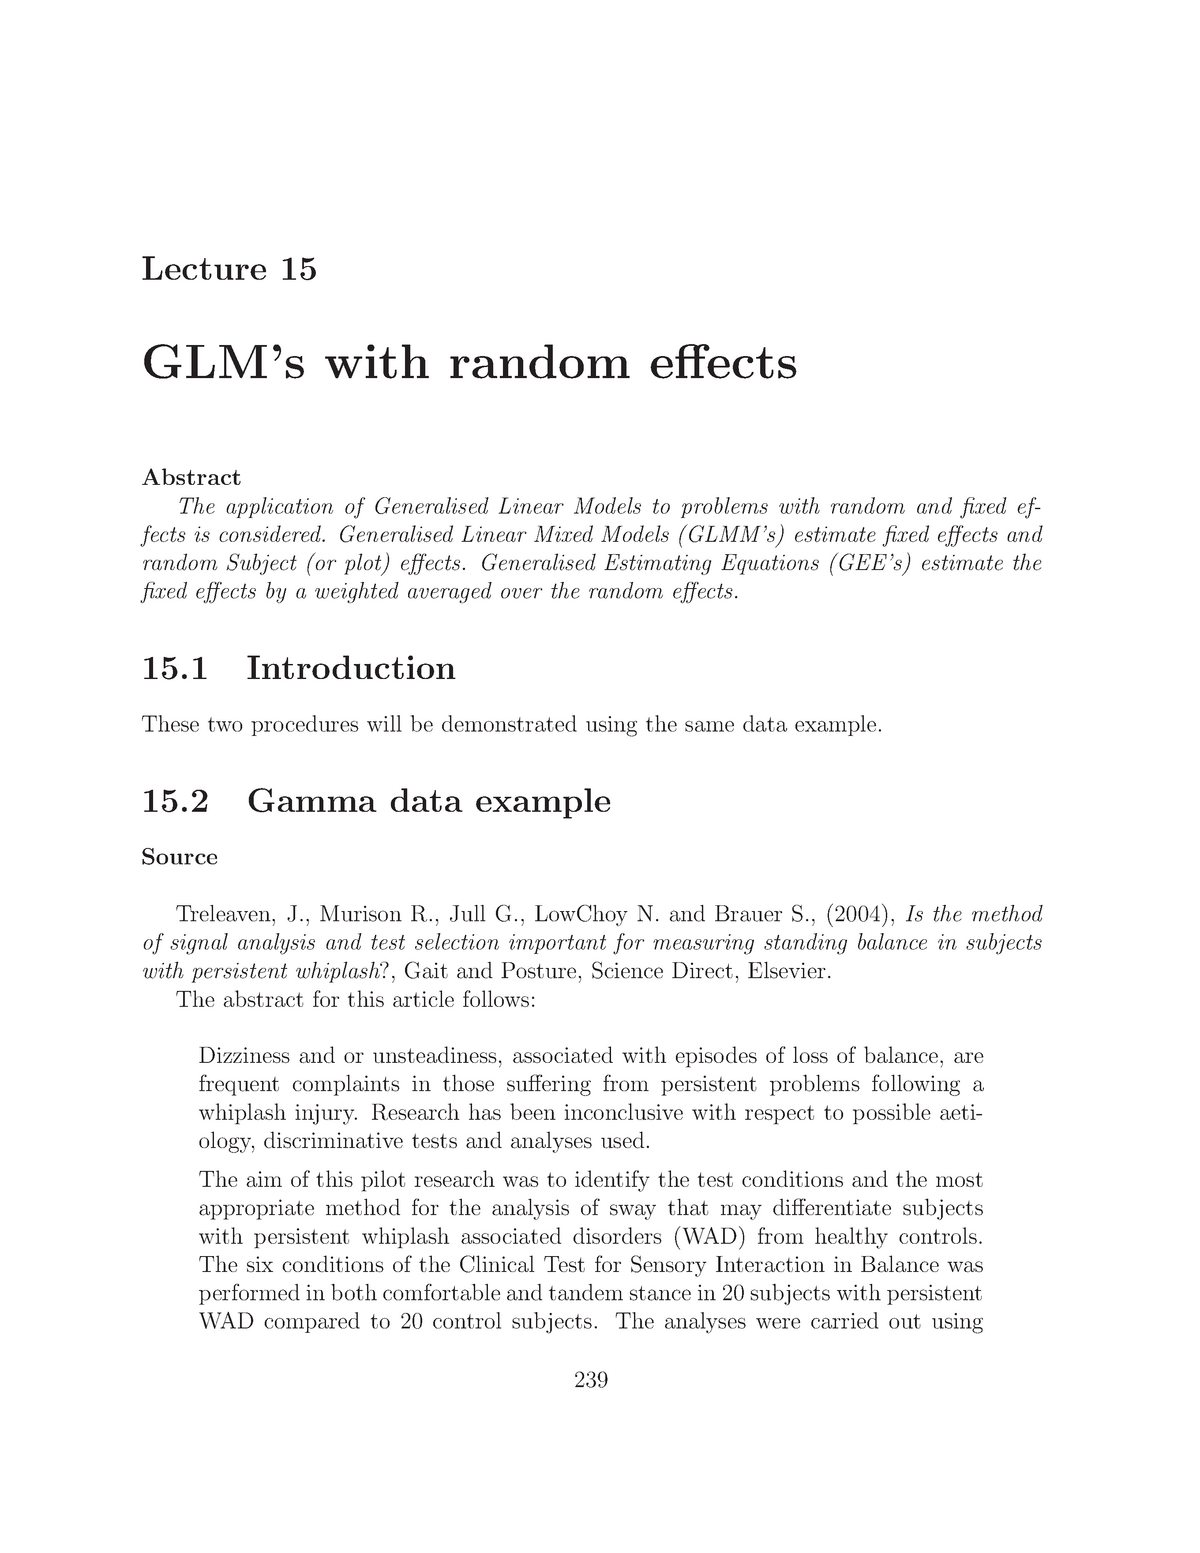 STAT 300 Lecture 15 - GLM's with Random Effects - STAT300